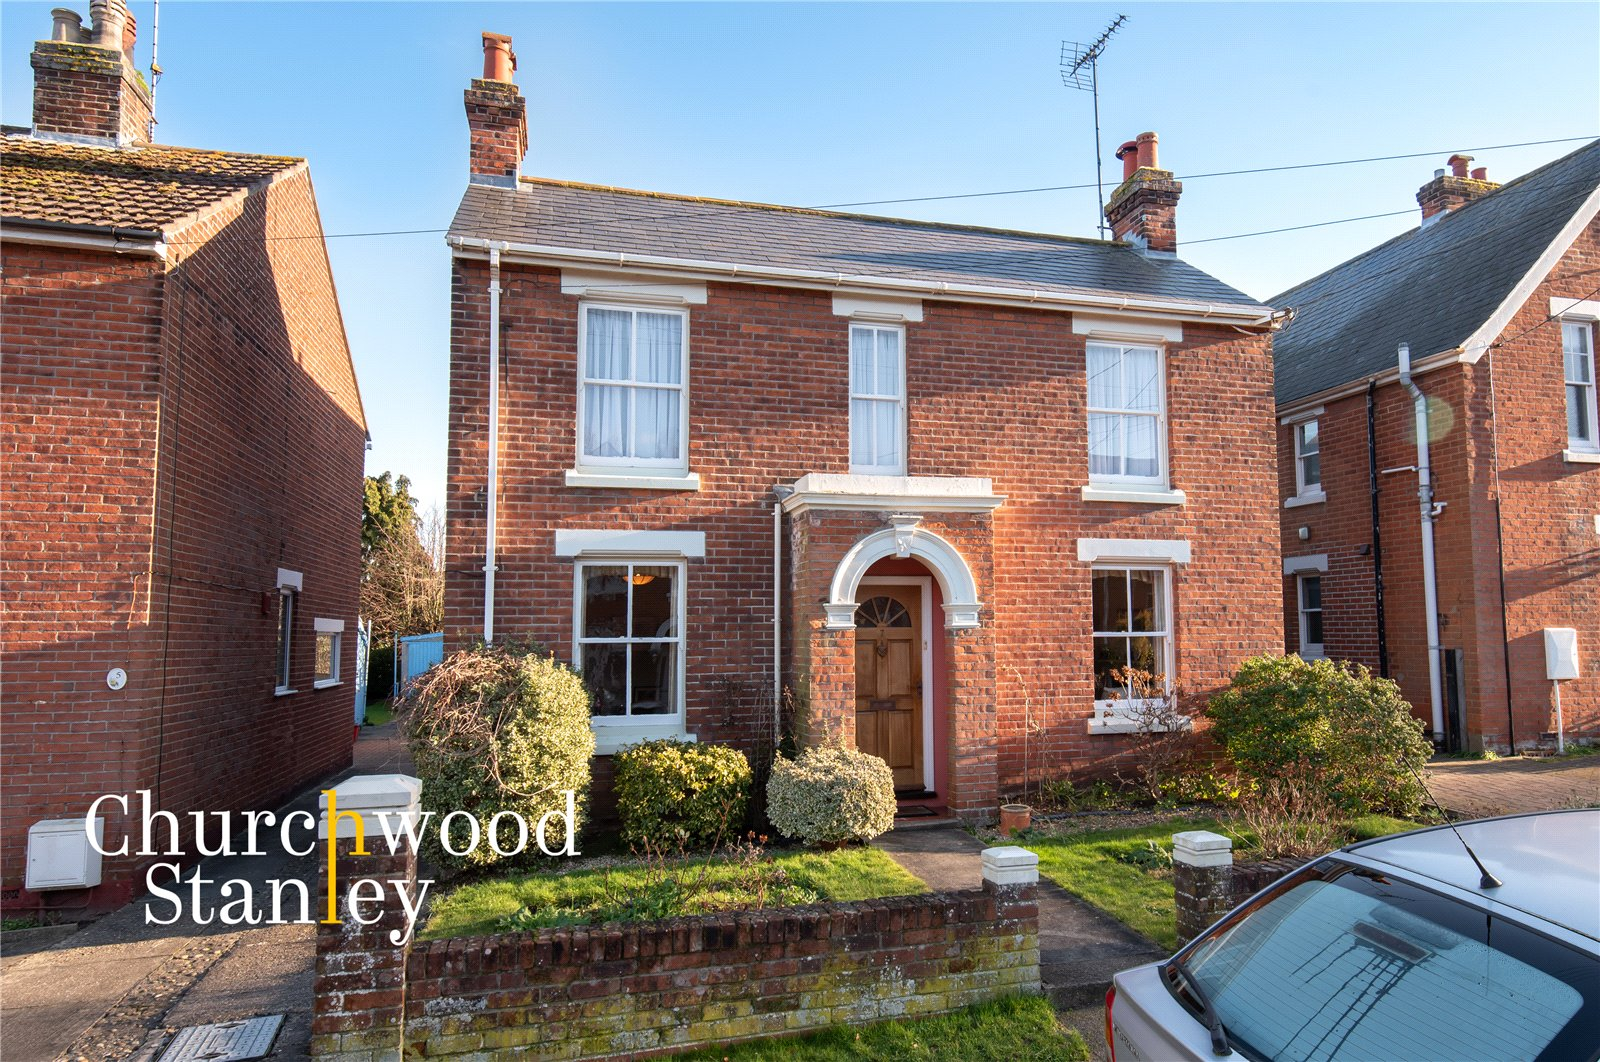 3 bed house for sale in Lushington Road, Manningtree, CO11